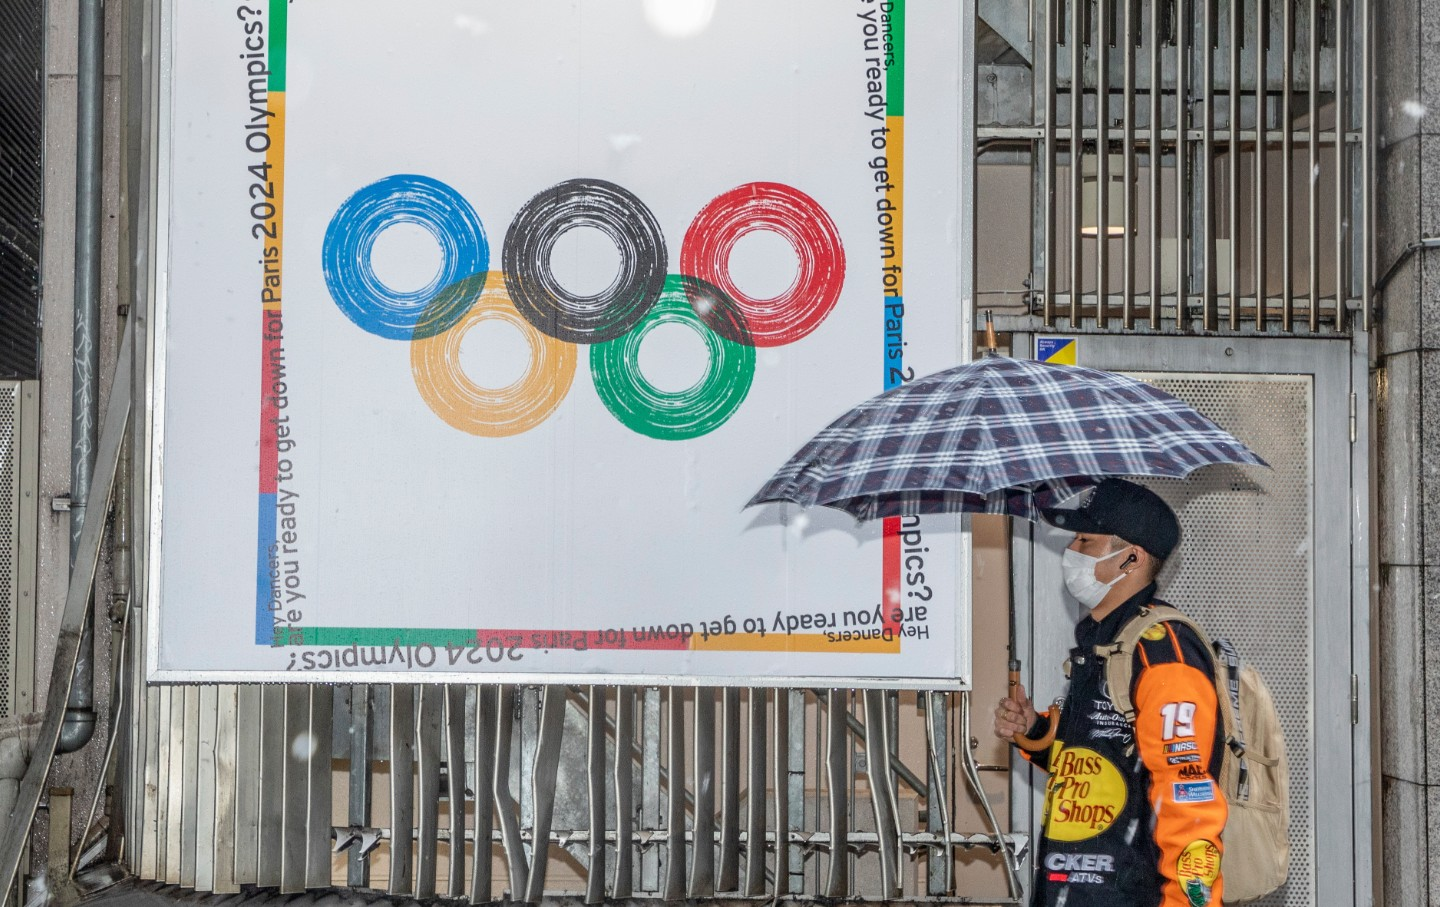 A man in a mask walks by an Olympic 2024 poster